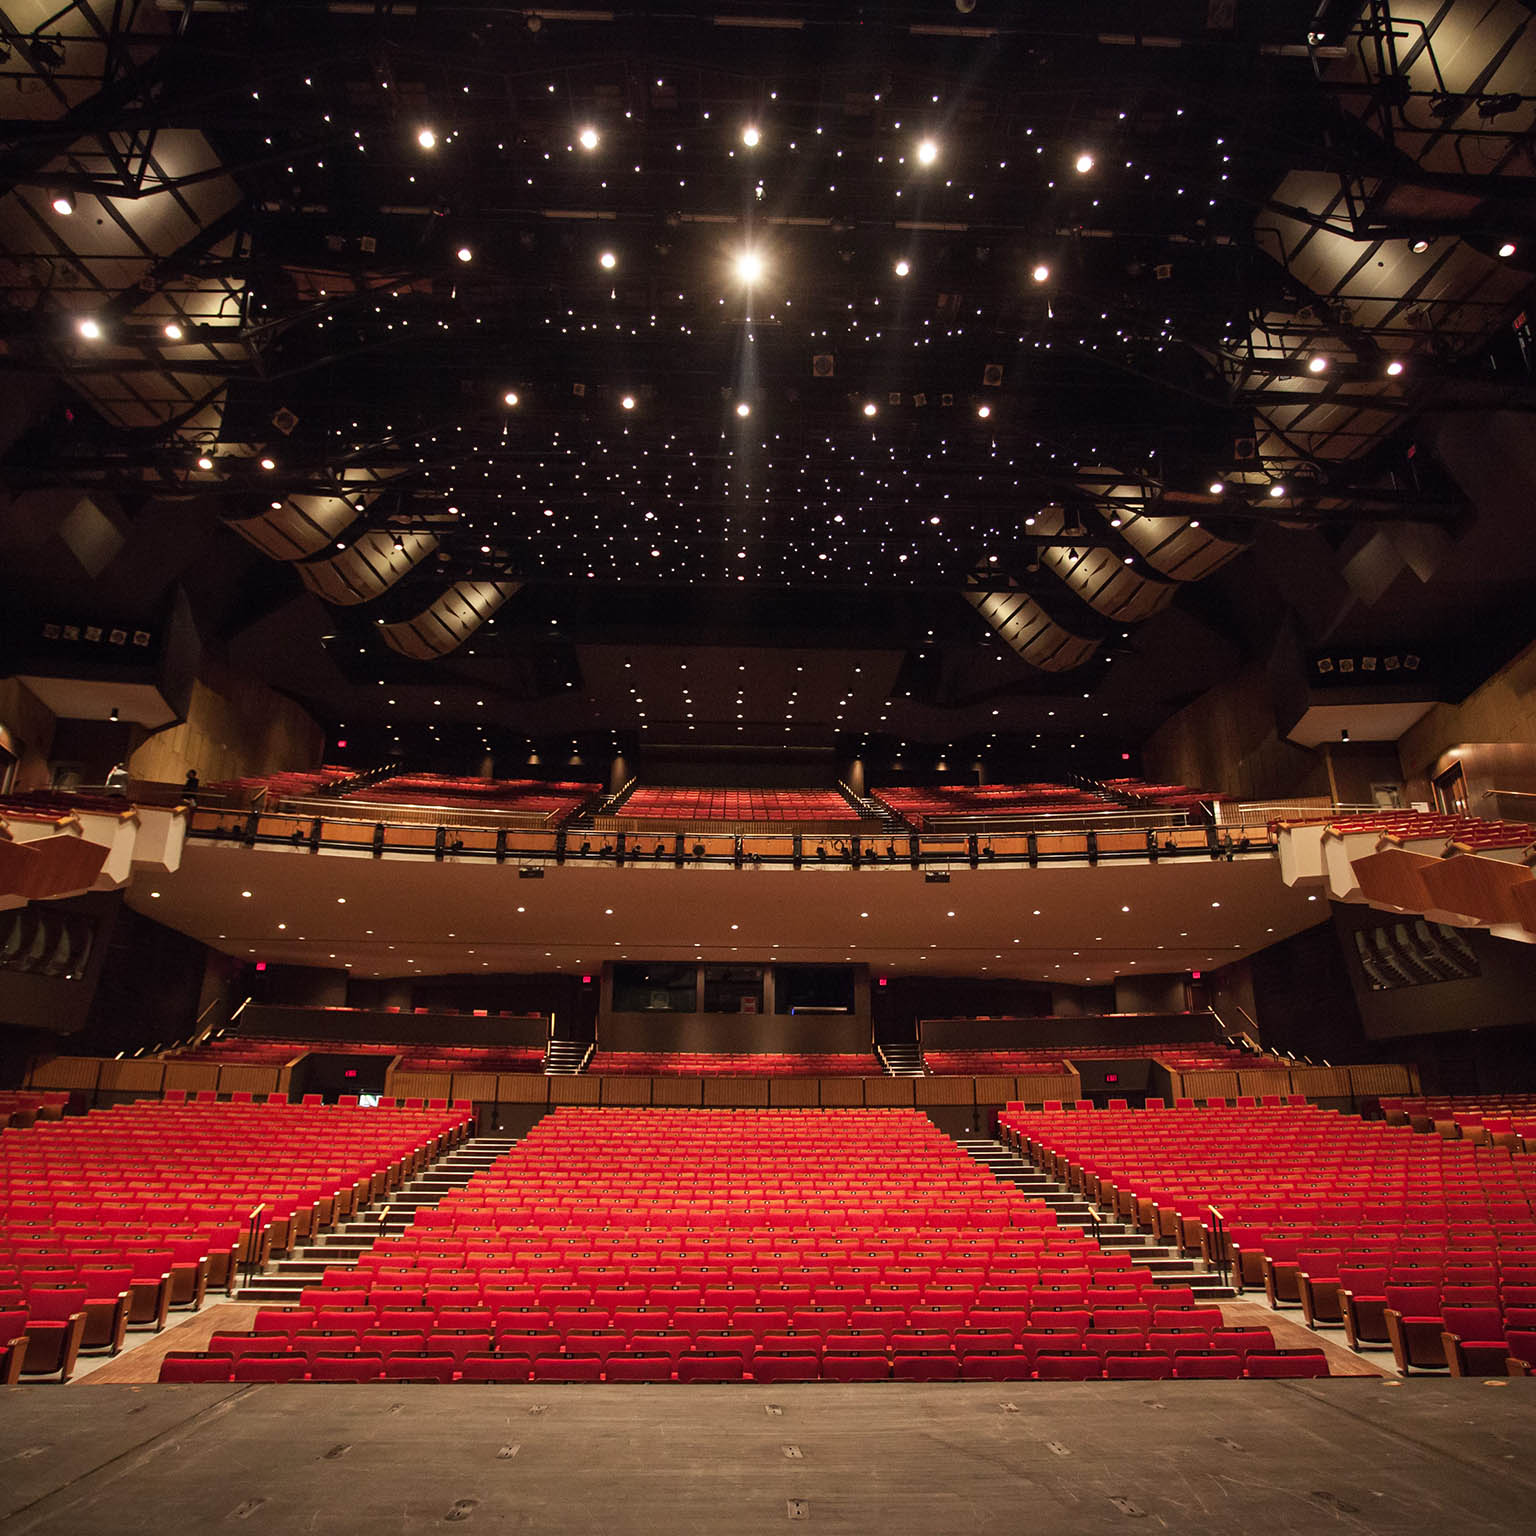 Queen Elizabeth Theatre auditorium from the stage